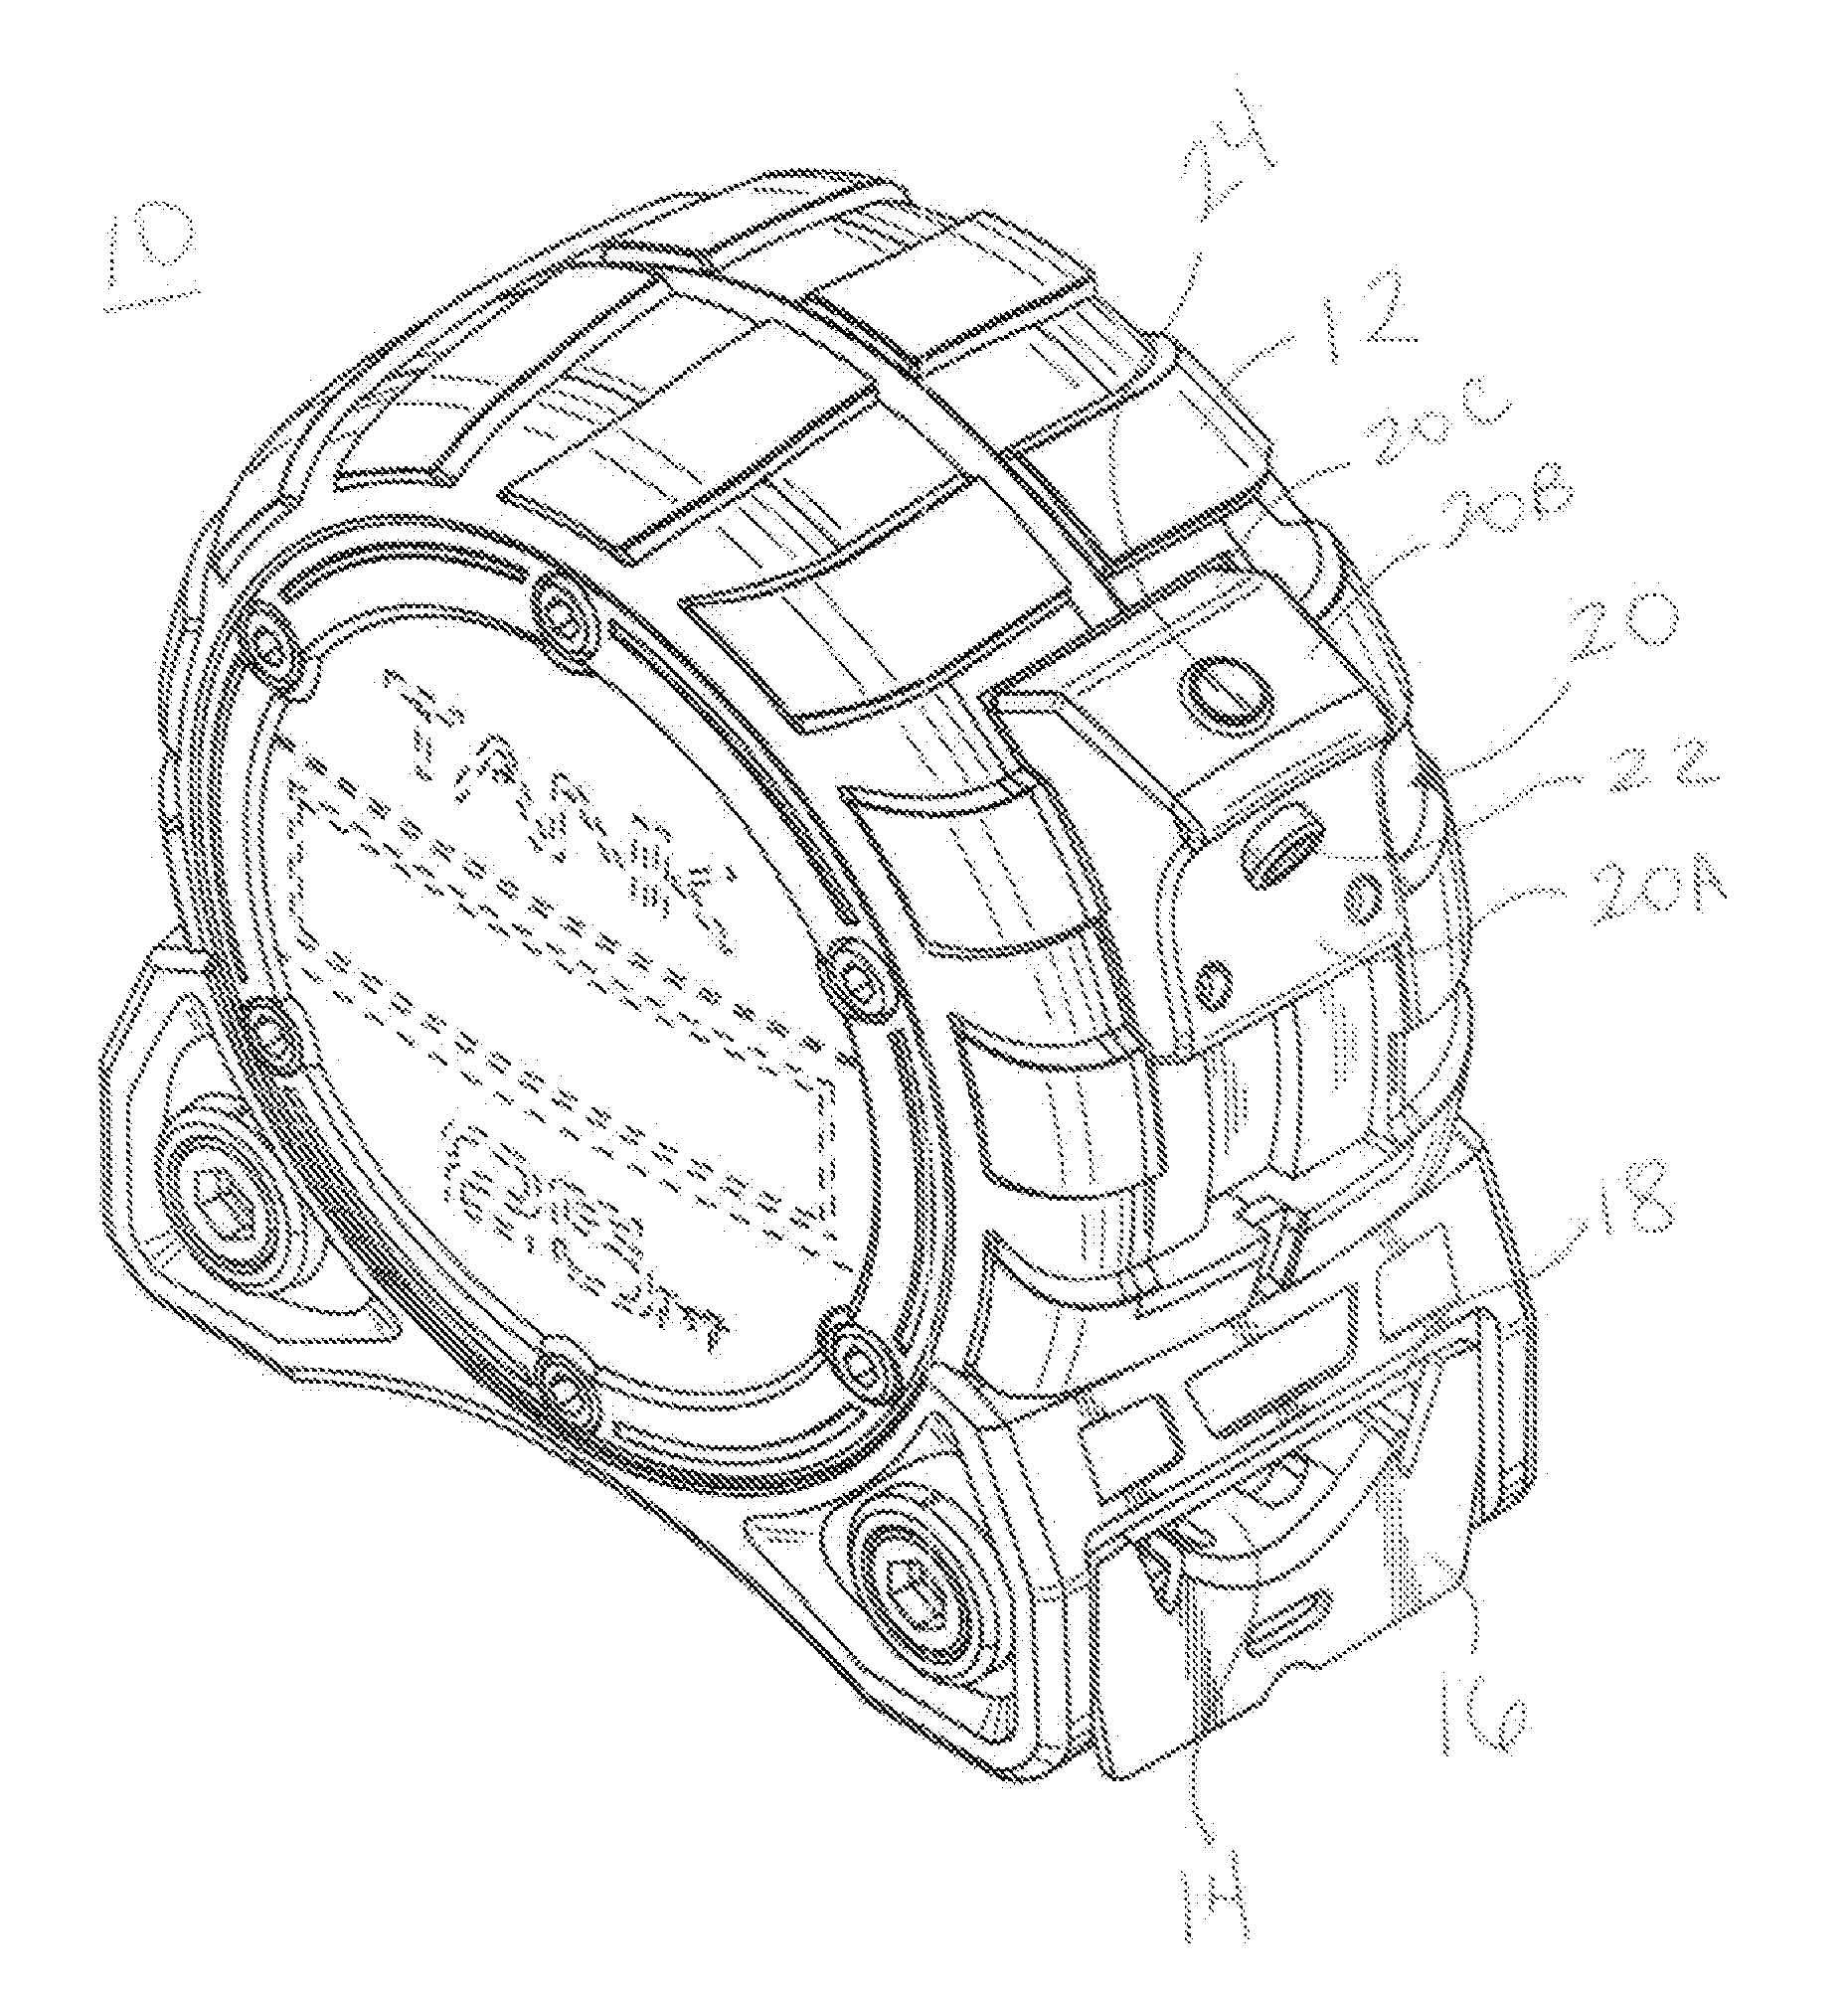 It is an image of Candid Measuring Tape Drawing